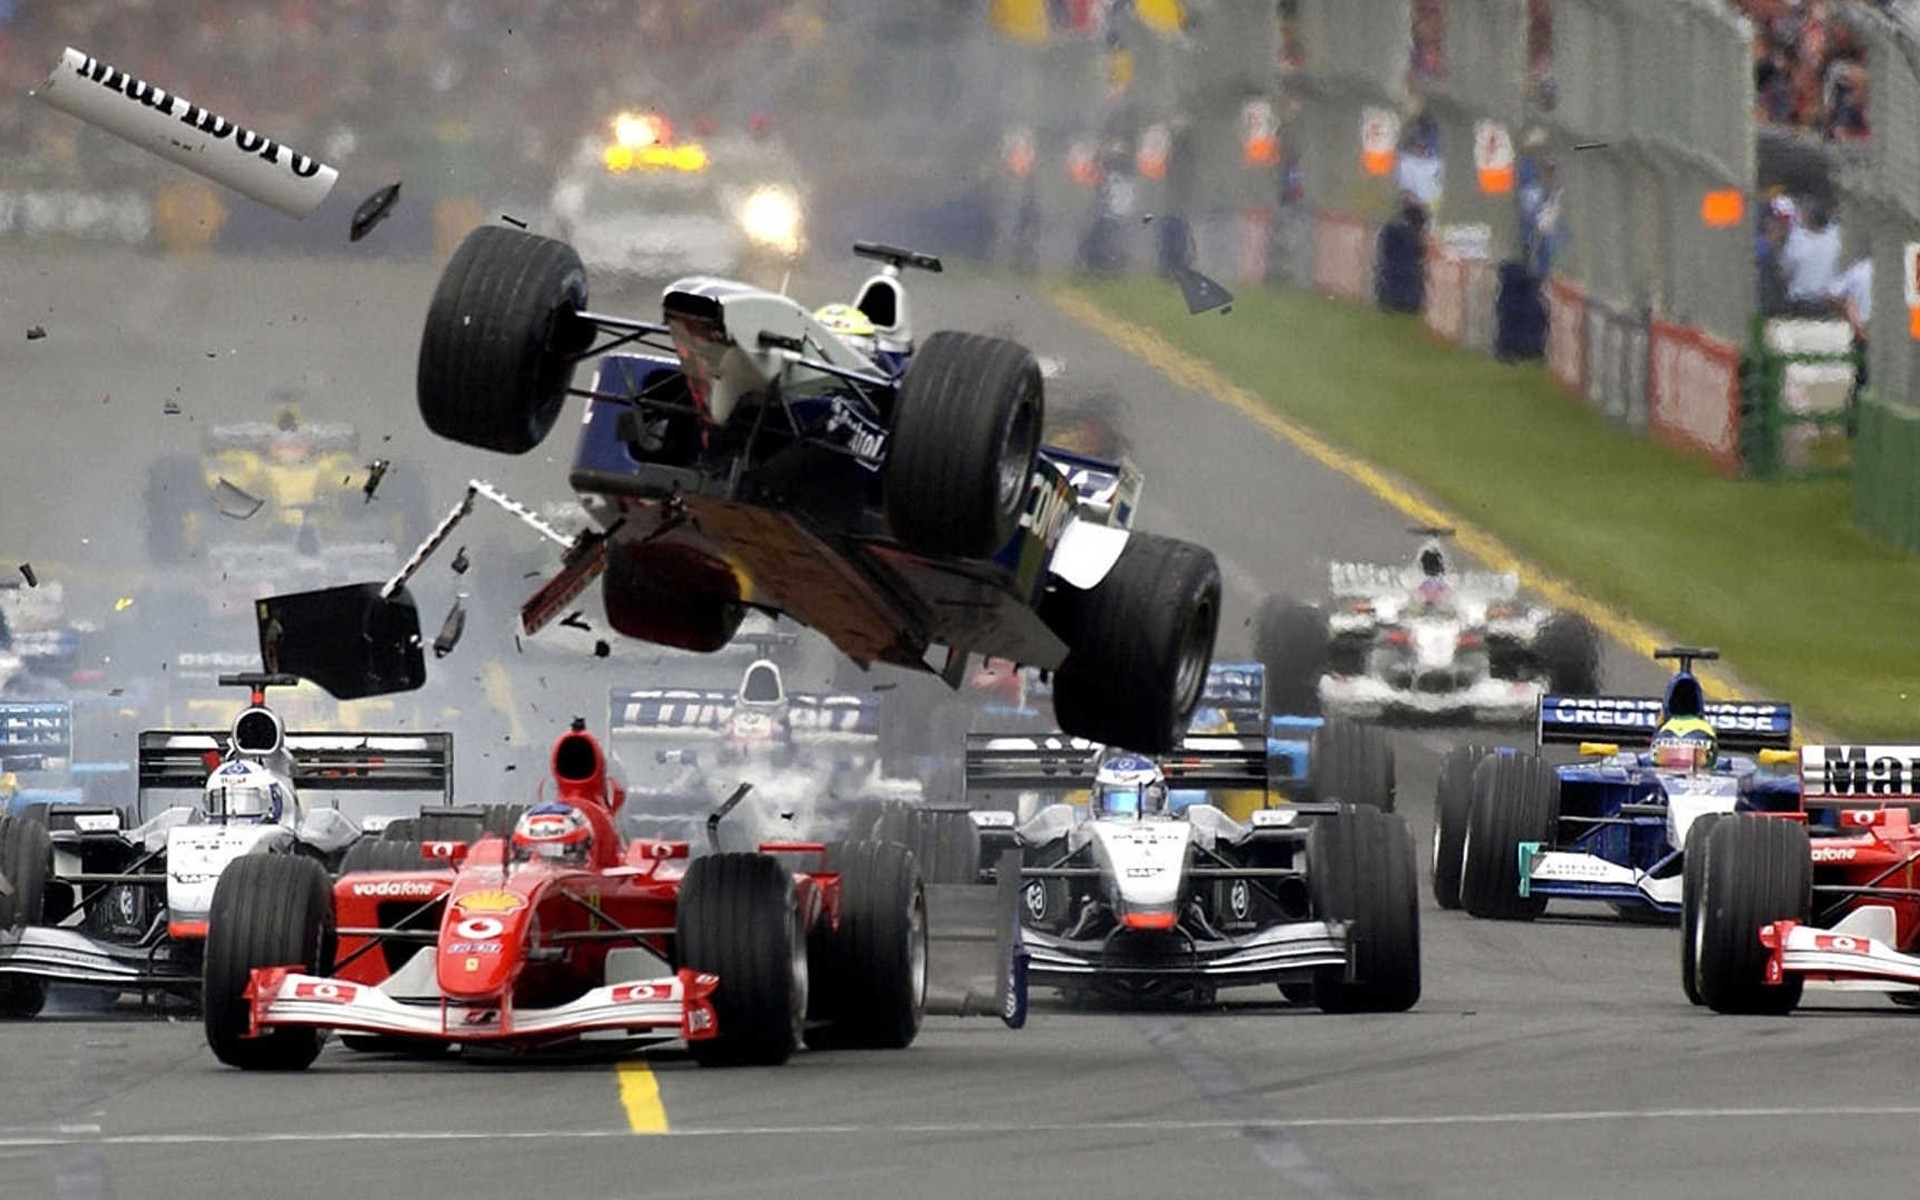 cars ferrari crash formula one vehicles mclaren races williams race tracks f1 wallpaper. Black Bedroom Furniture Sets. Home Design Ideas